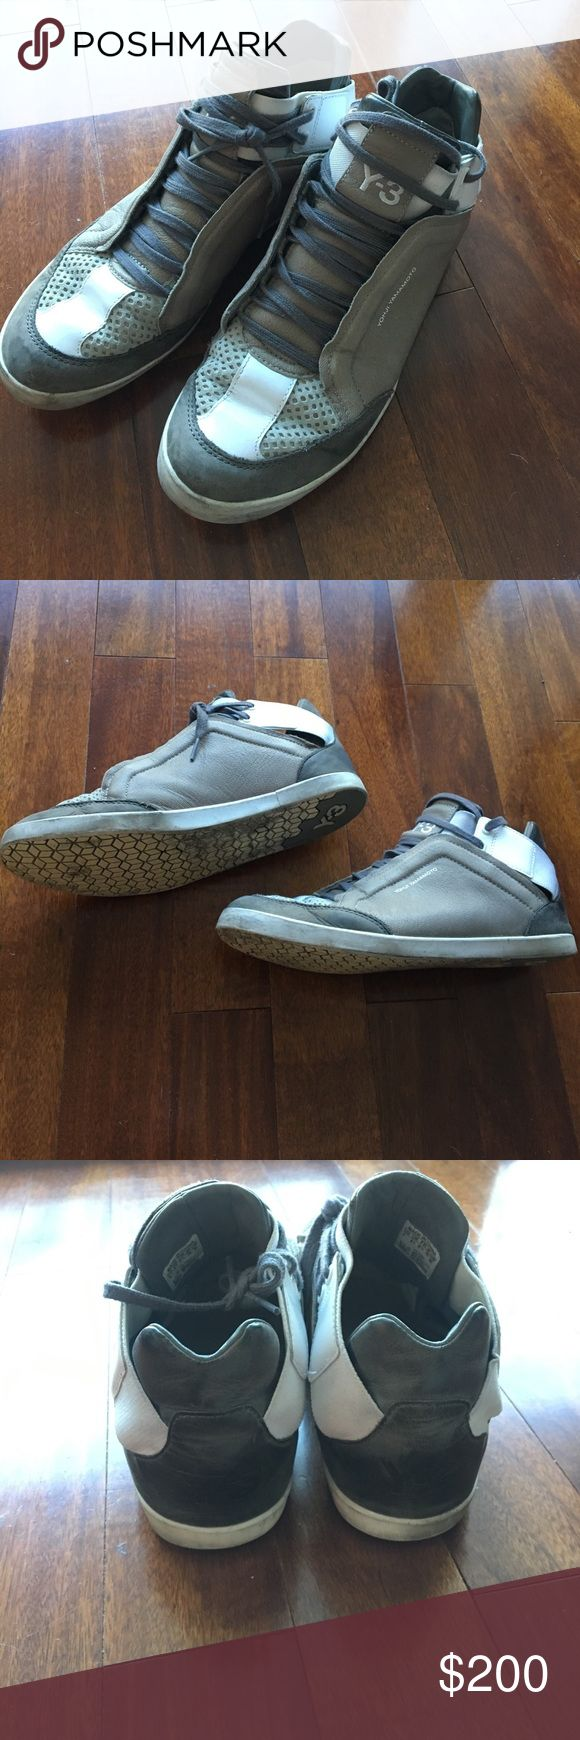 Yoghi Yamamoto Y3 Grey Sneakers - 9 Y3 Grey Sneakers - 9 Scuffing at Toe and back. Yohji Yamamoto Shoes Sneakers